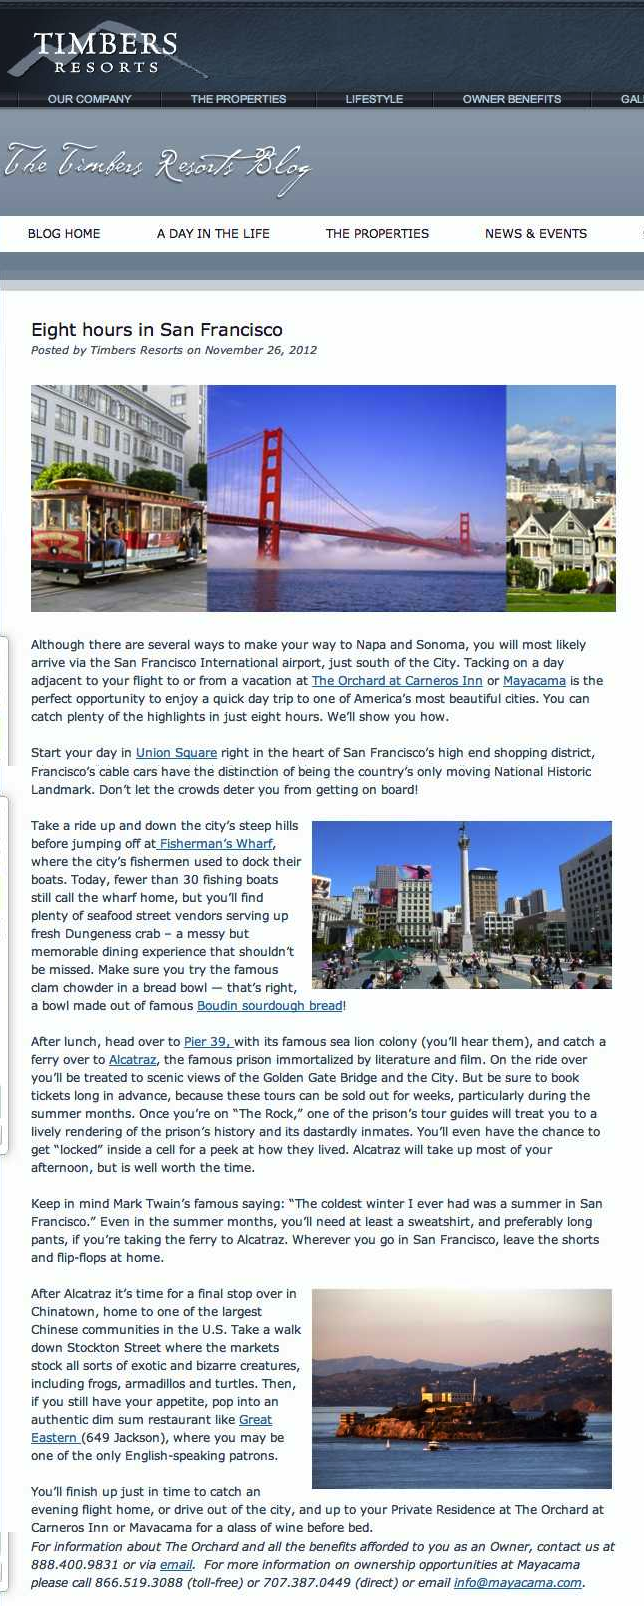 Eight hours in San Francisco - Timbers Resorts copy